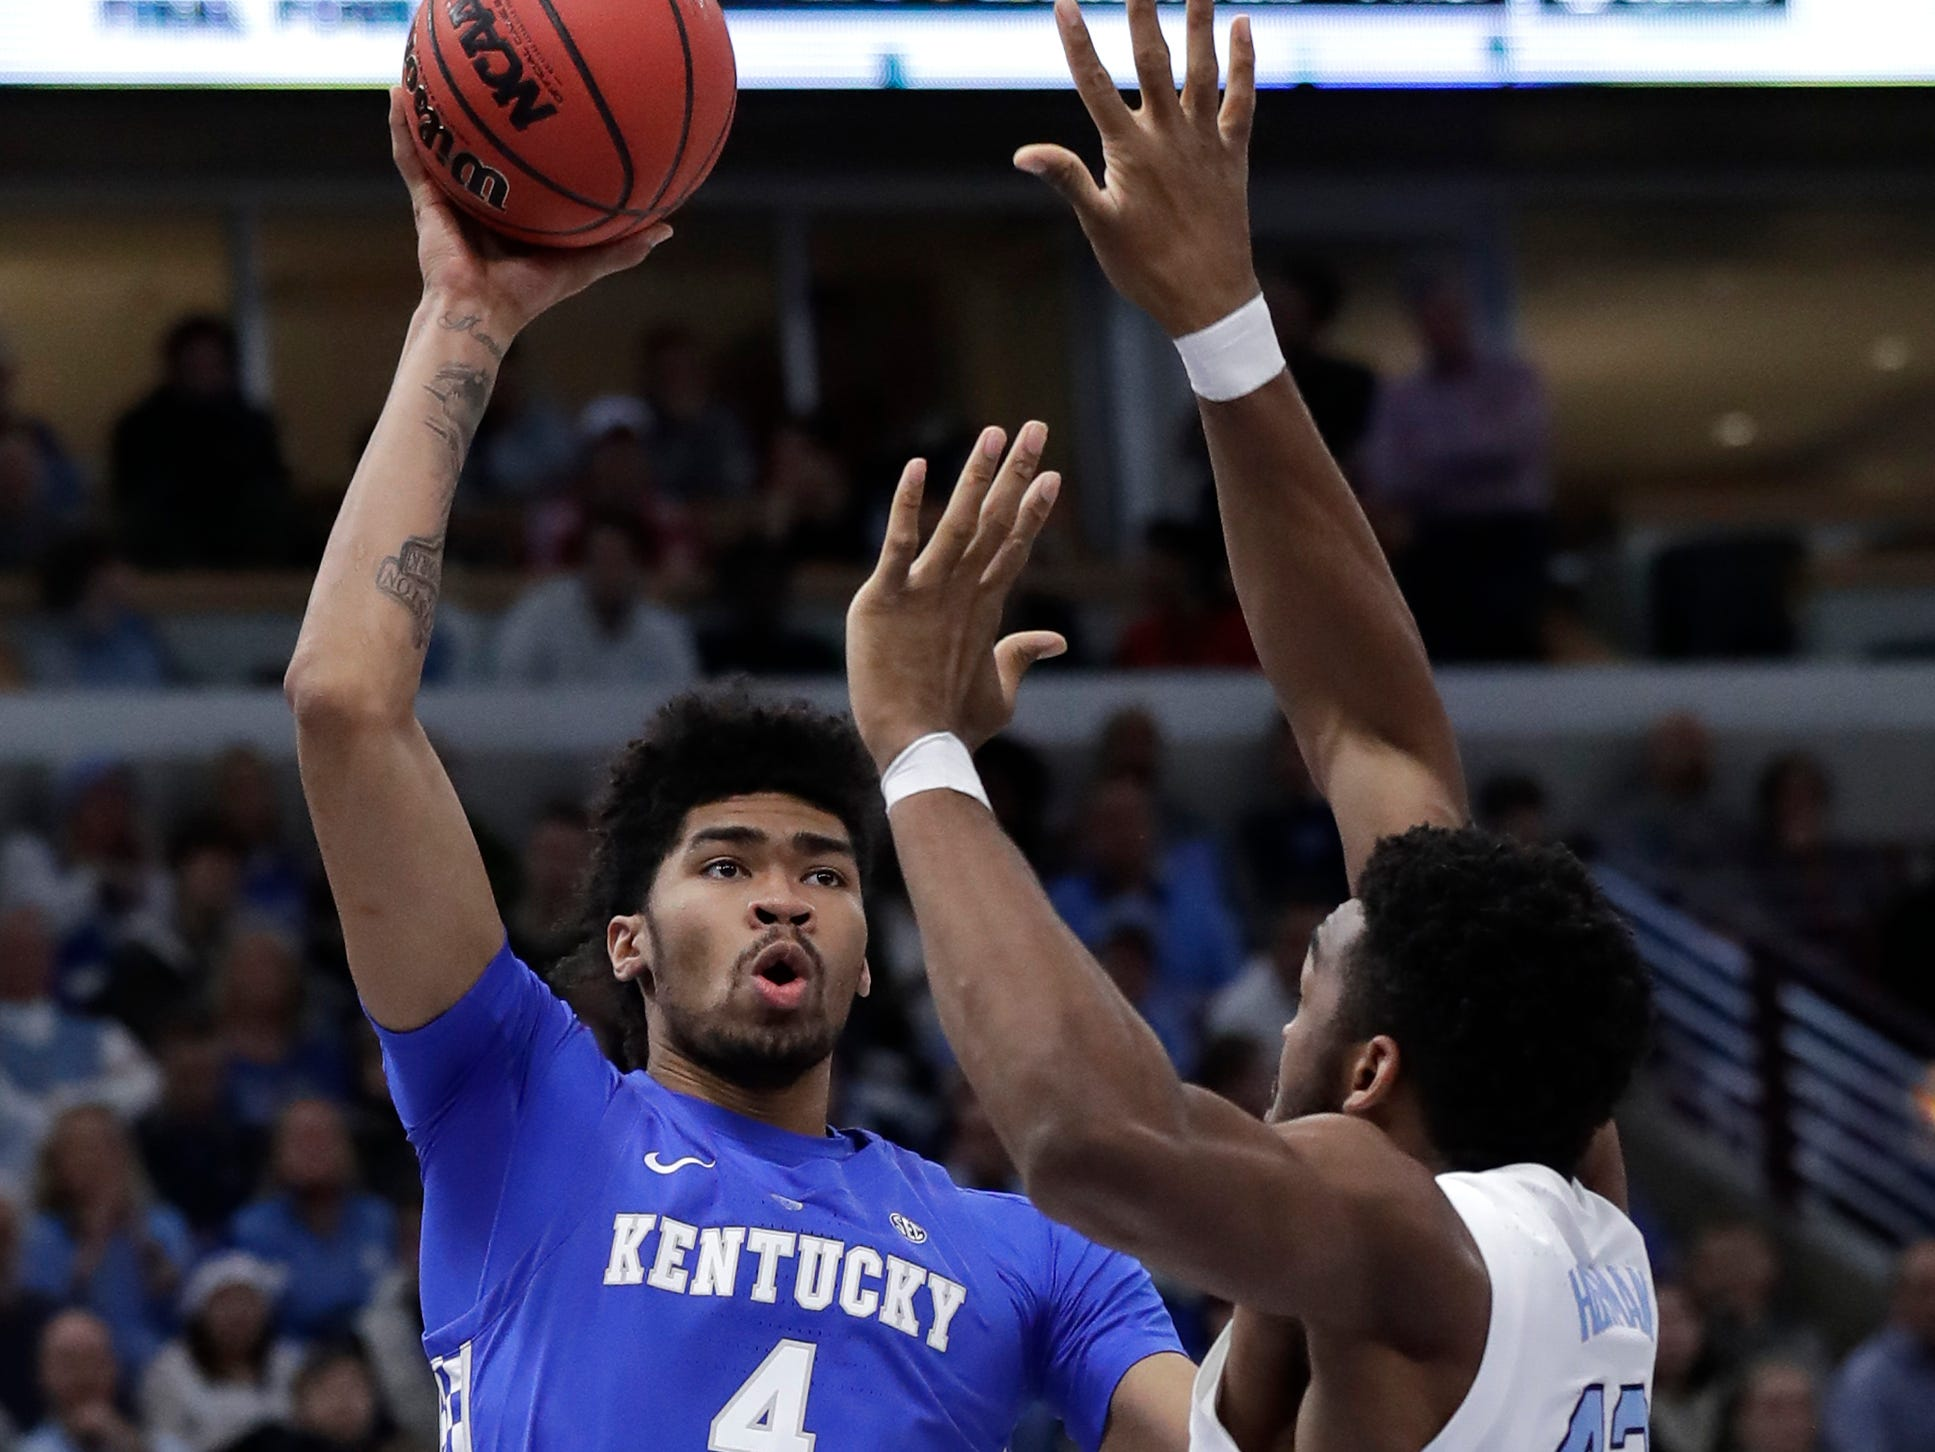 Kentucky forward Nick Richards, left, shoots over North Carolina forward Brandon Huffman during the second half of an NCAA college basketball game in the fifth annual CBS Sports Classic, Saturday, Dec. 22, 2018, in Chicago.